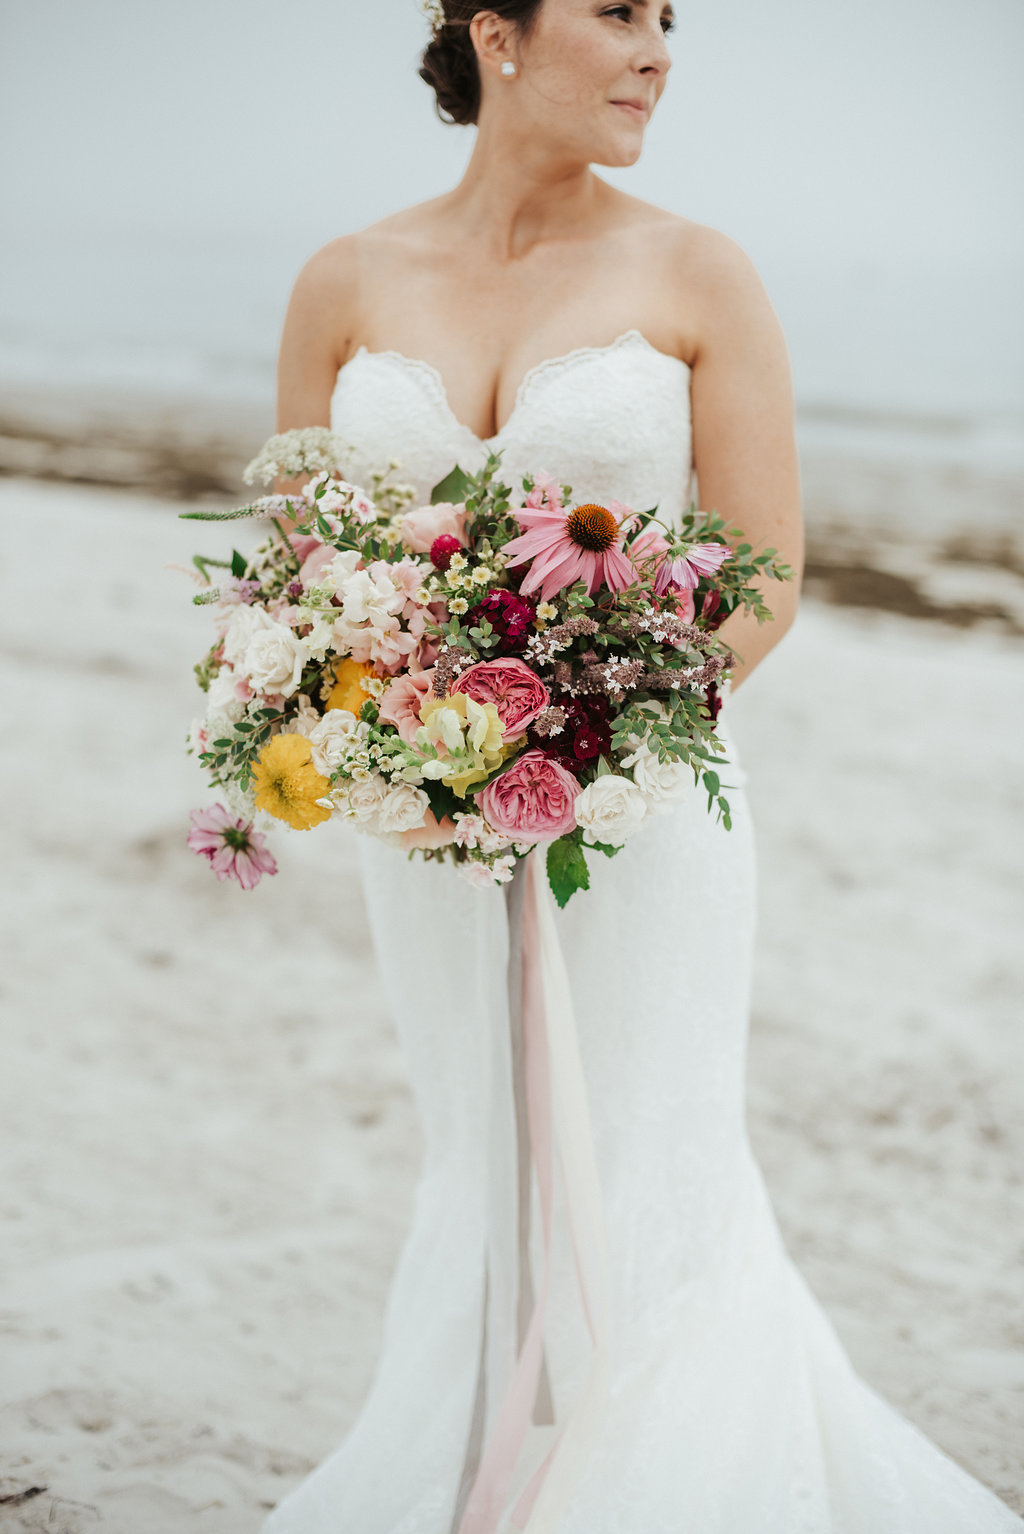 Watershed_Floral_Summer_Maine_Wedding_072818_KJ-35.jpg